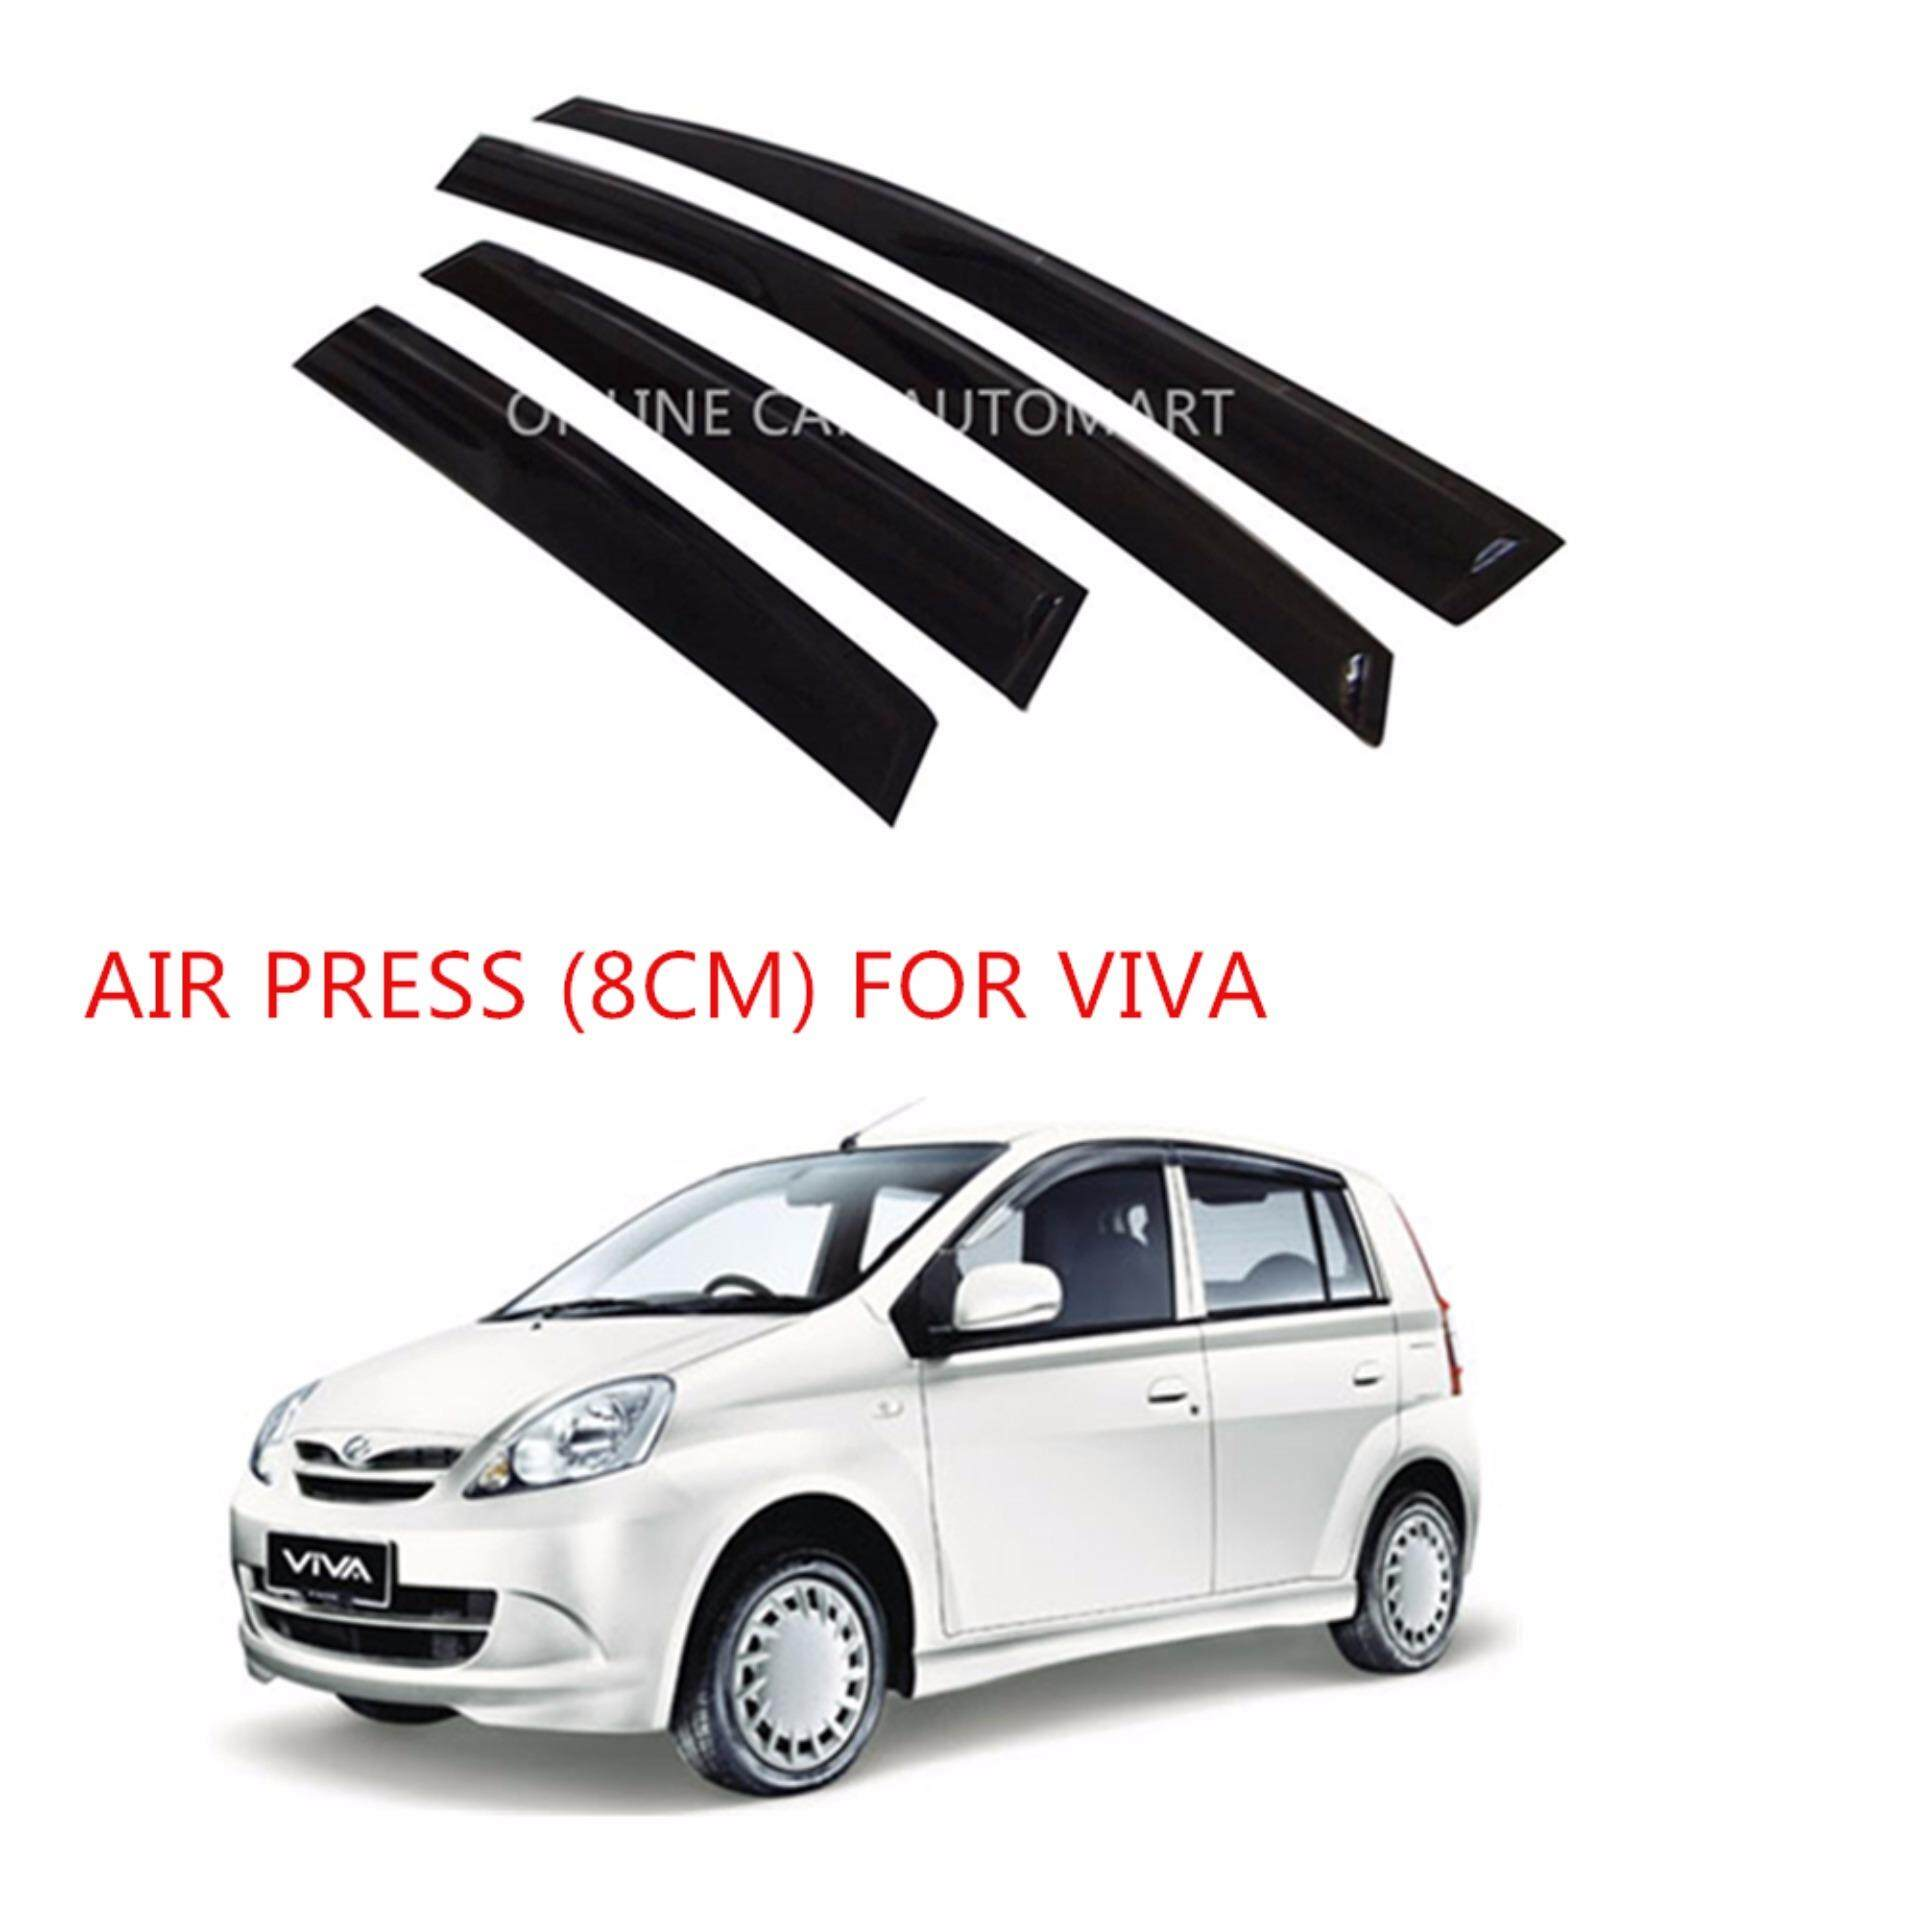 [CNY 2020] Air Press Car Window Door Visor Wind Deflector Anti UV Light 8cm (4PCS/SET) for Perodua Viva